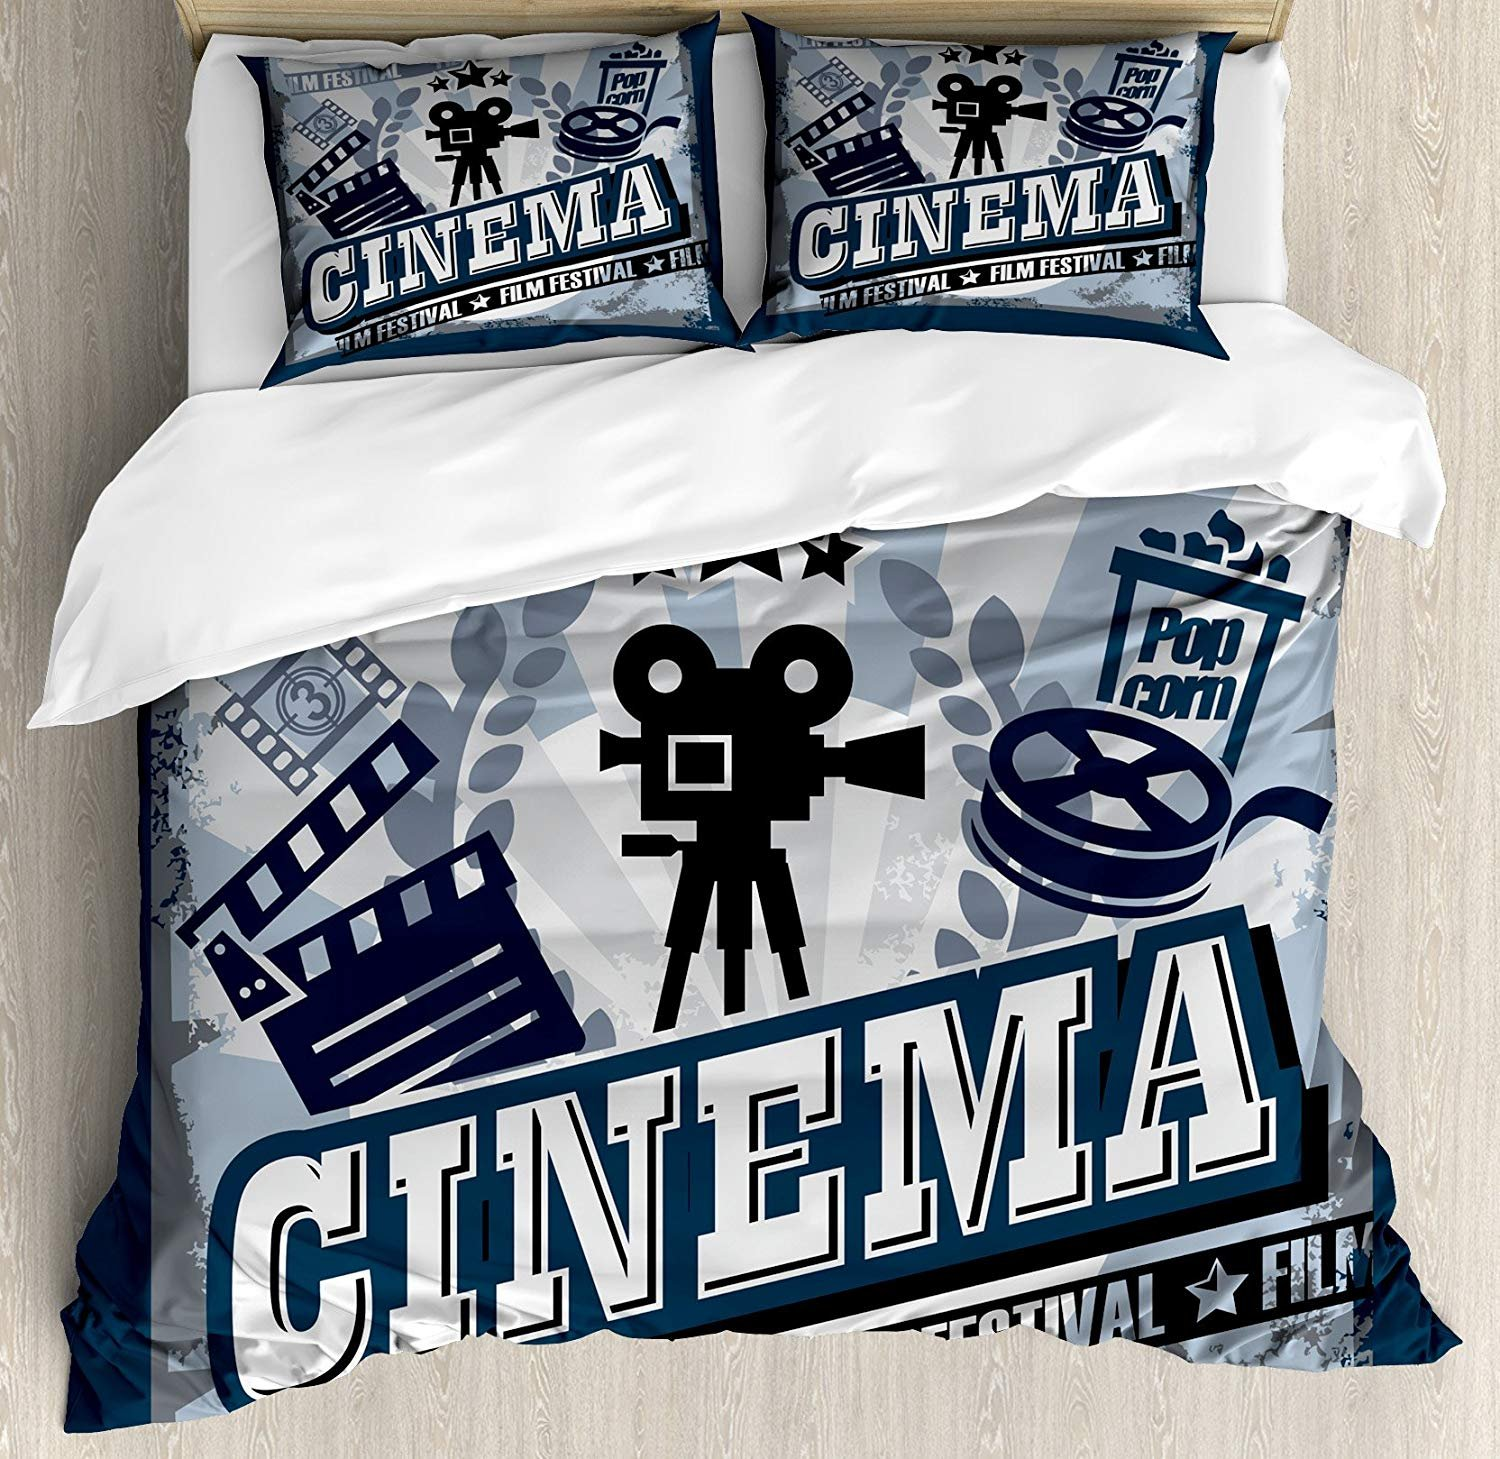 Movie Theater Twin Duvet Cover Sets 4 Piece Bedding Set Bedspread with 2 Pillow Sham, Flat Sheet for Adult/Kids/Teens, Vintage Cinema Poster Design with Grunge Effect and Old Fashioned Icons